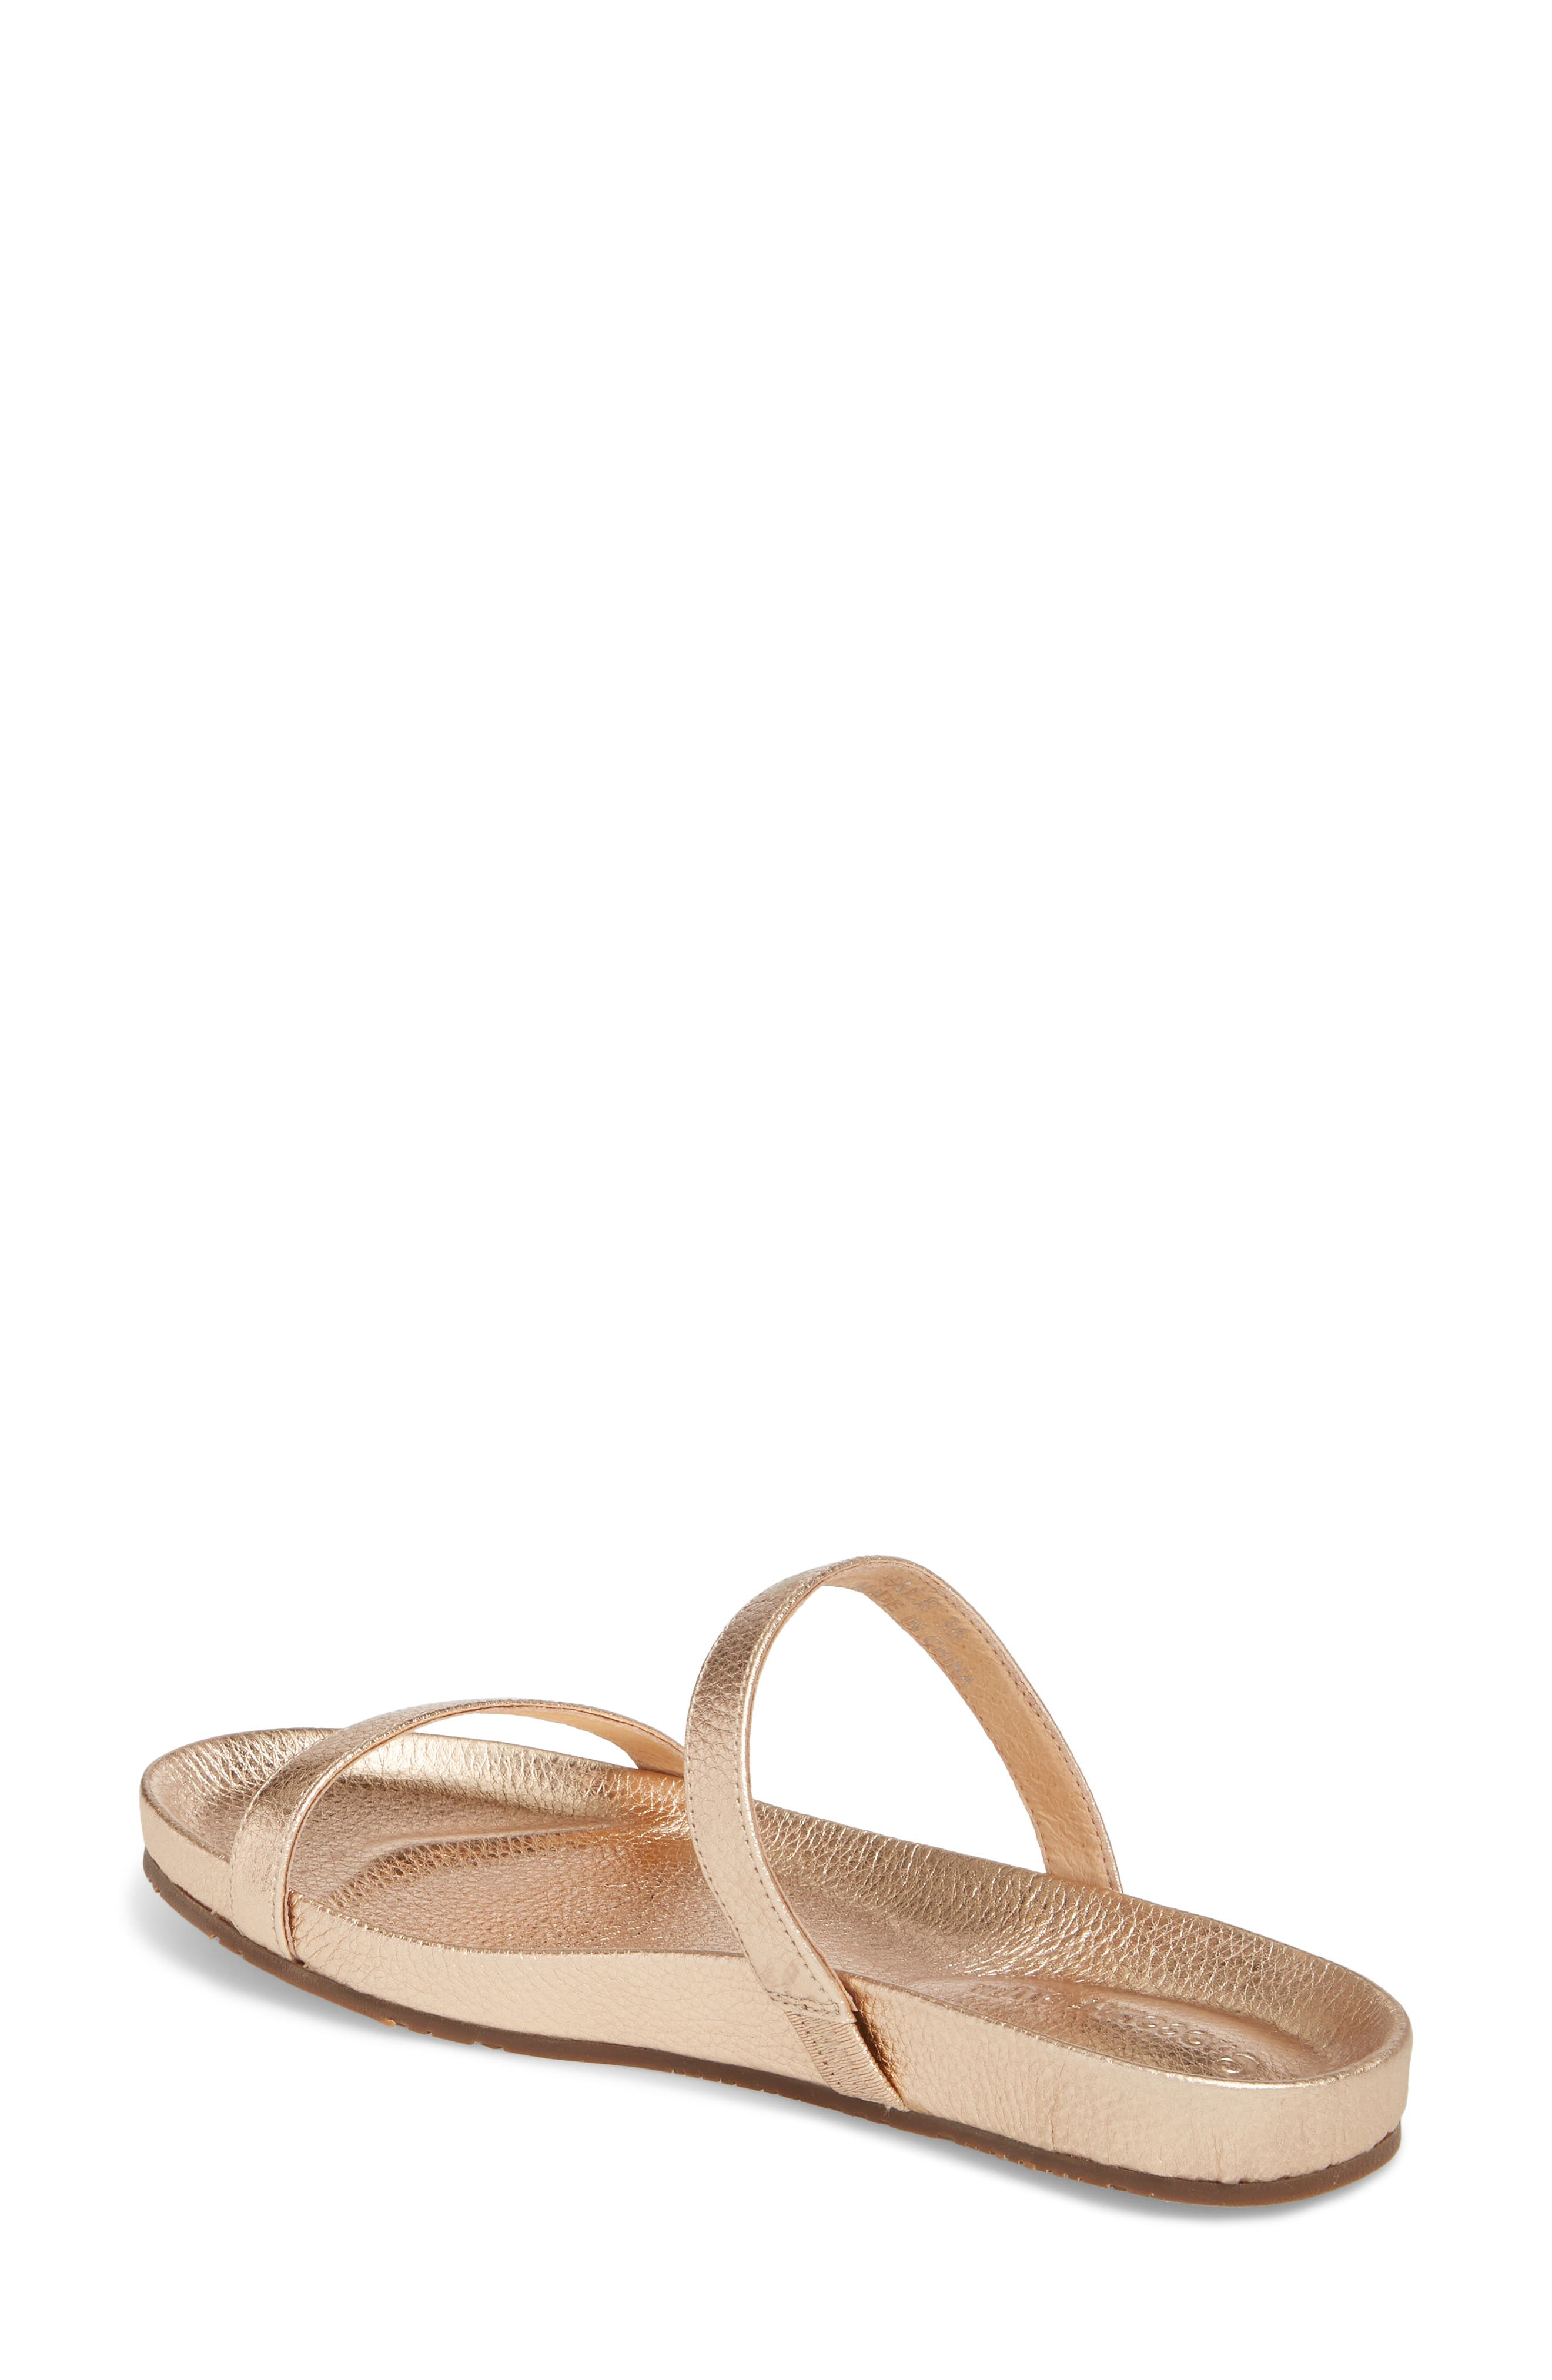 Yale Two-Strap Sandal,                             Alternate thumbnail 2, color,                             Rose Gold Leather